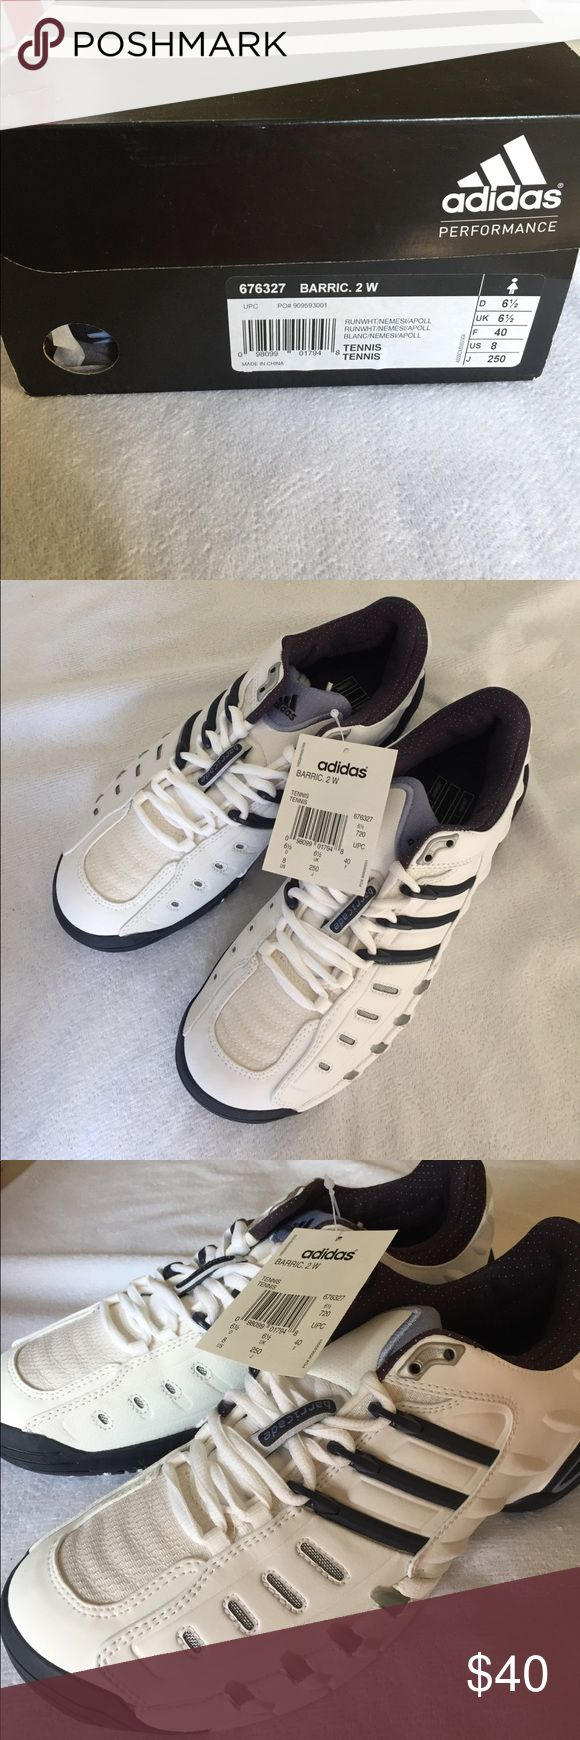 NWT Adidas Barricade Women's Tennis Shoes - Size 8 New with tags and box - Adidas Barricade Women's Tennis Shoes - Size 8. Brand new, never worn. adidas Shoes Sneakers